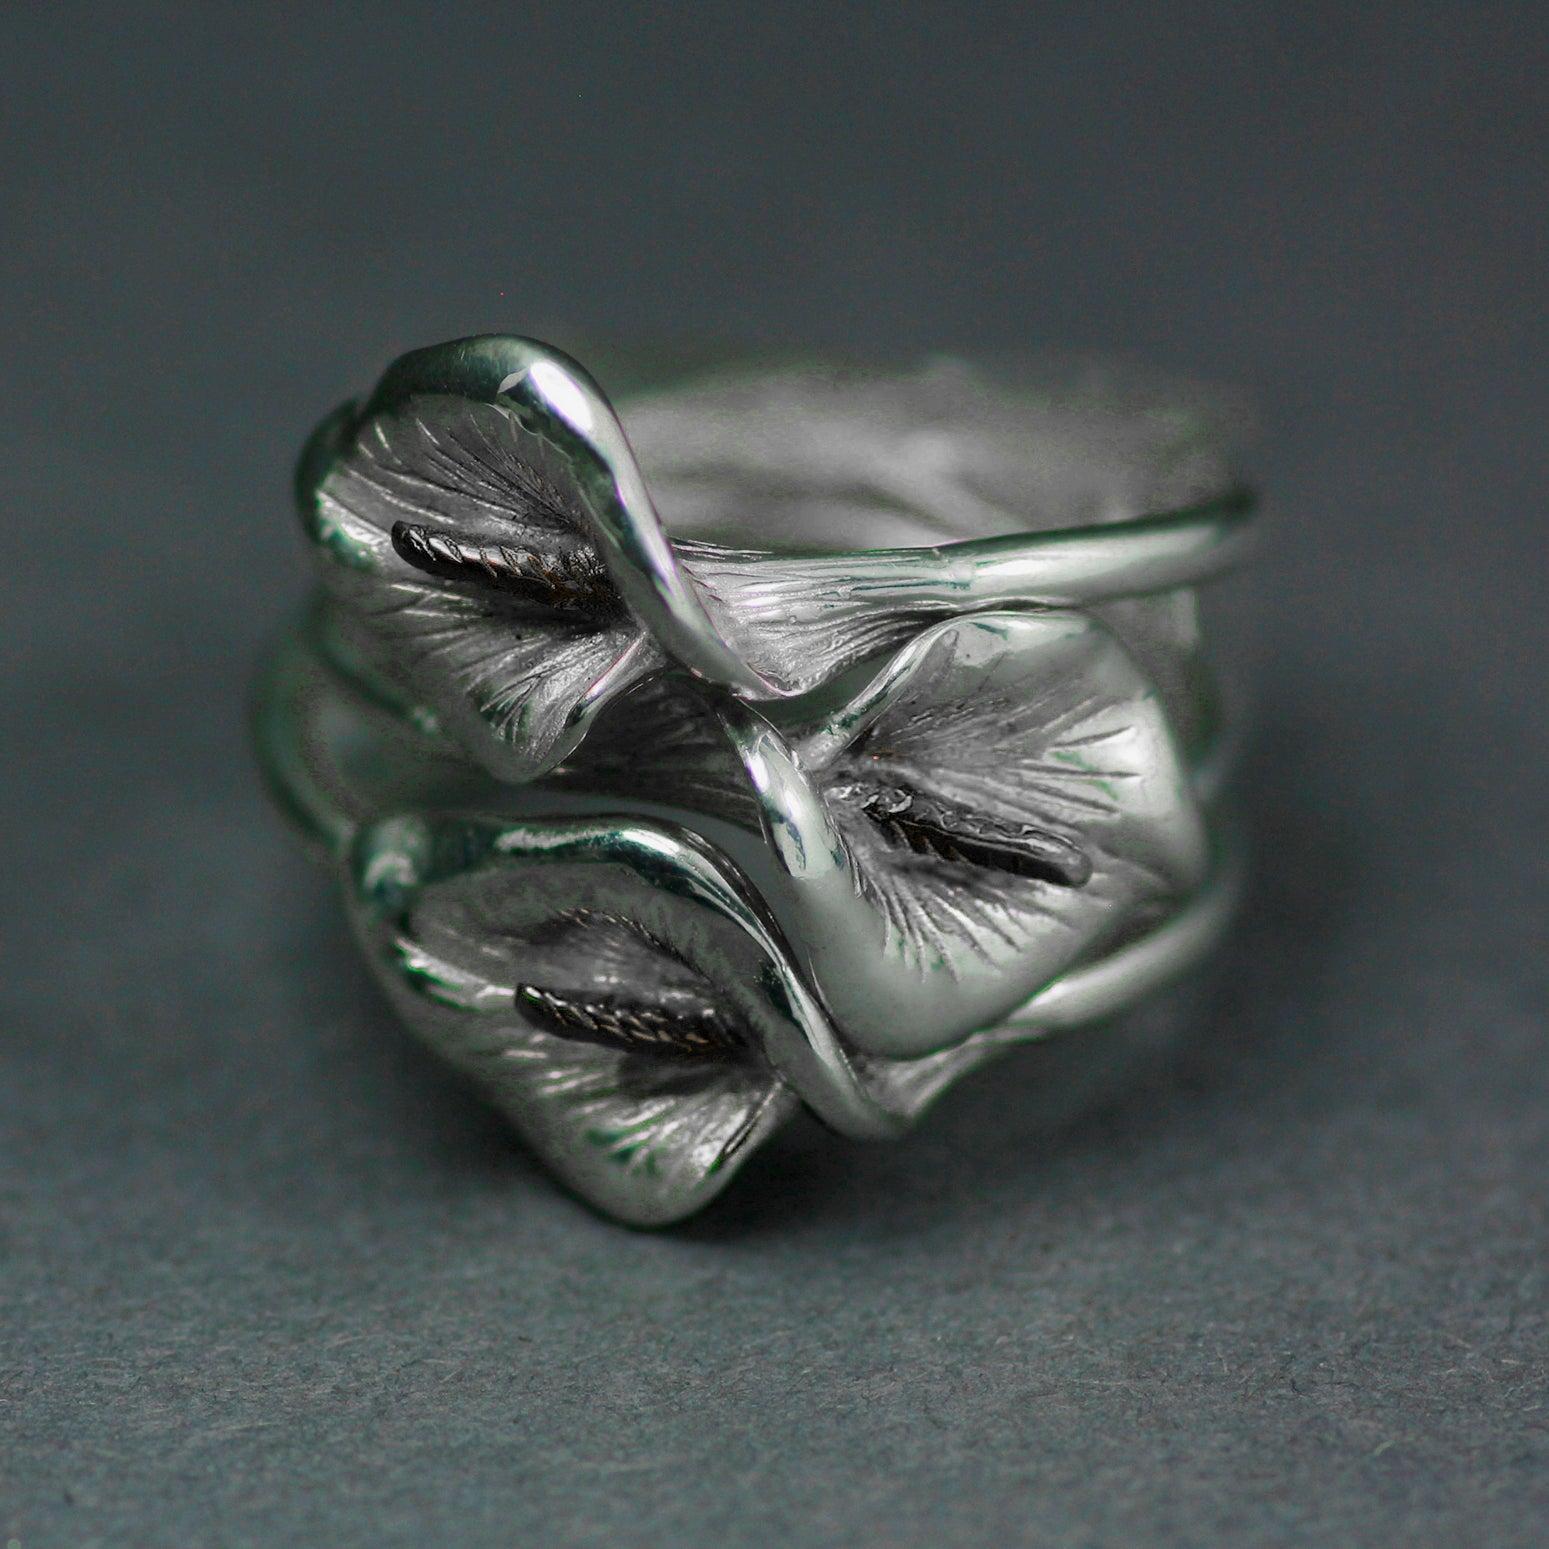 Trinity Lily Ring is beautifully handcrafted from Sterling Silver by Elena Brennan.